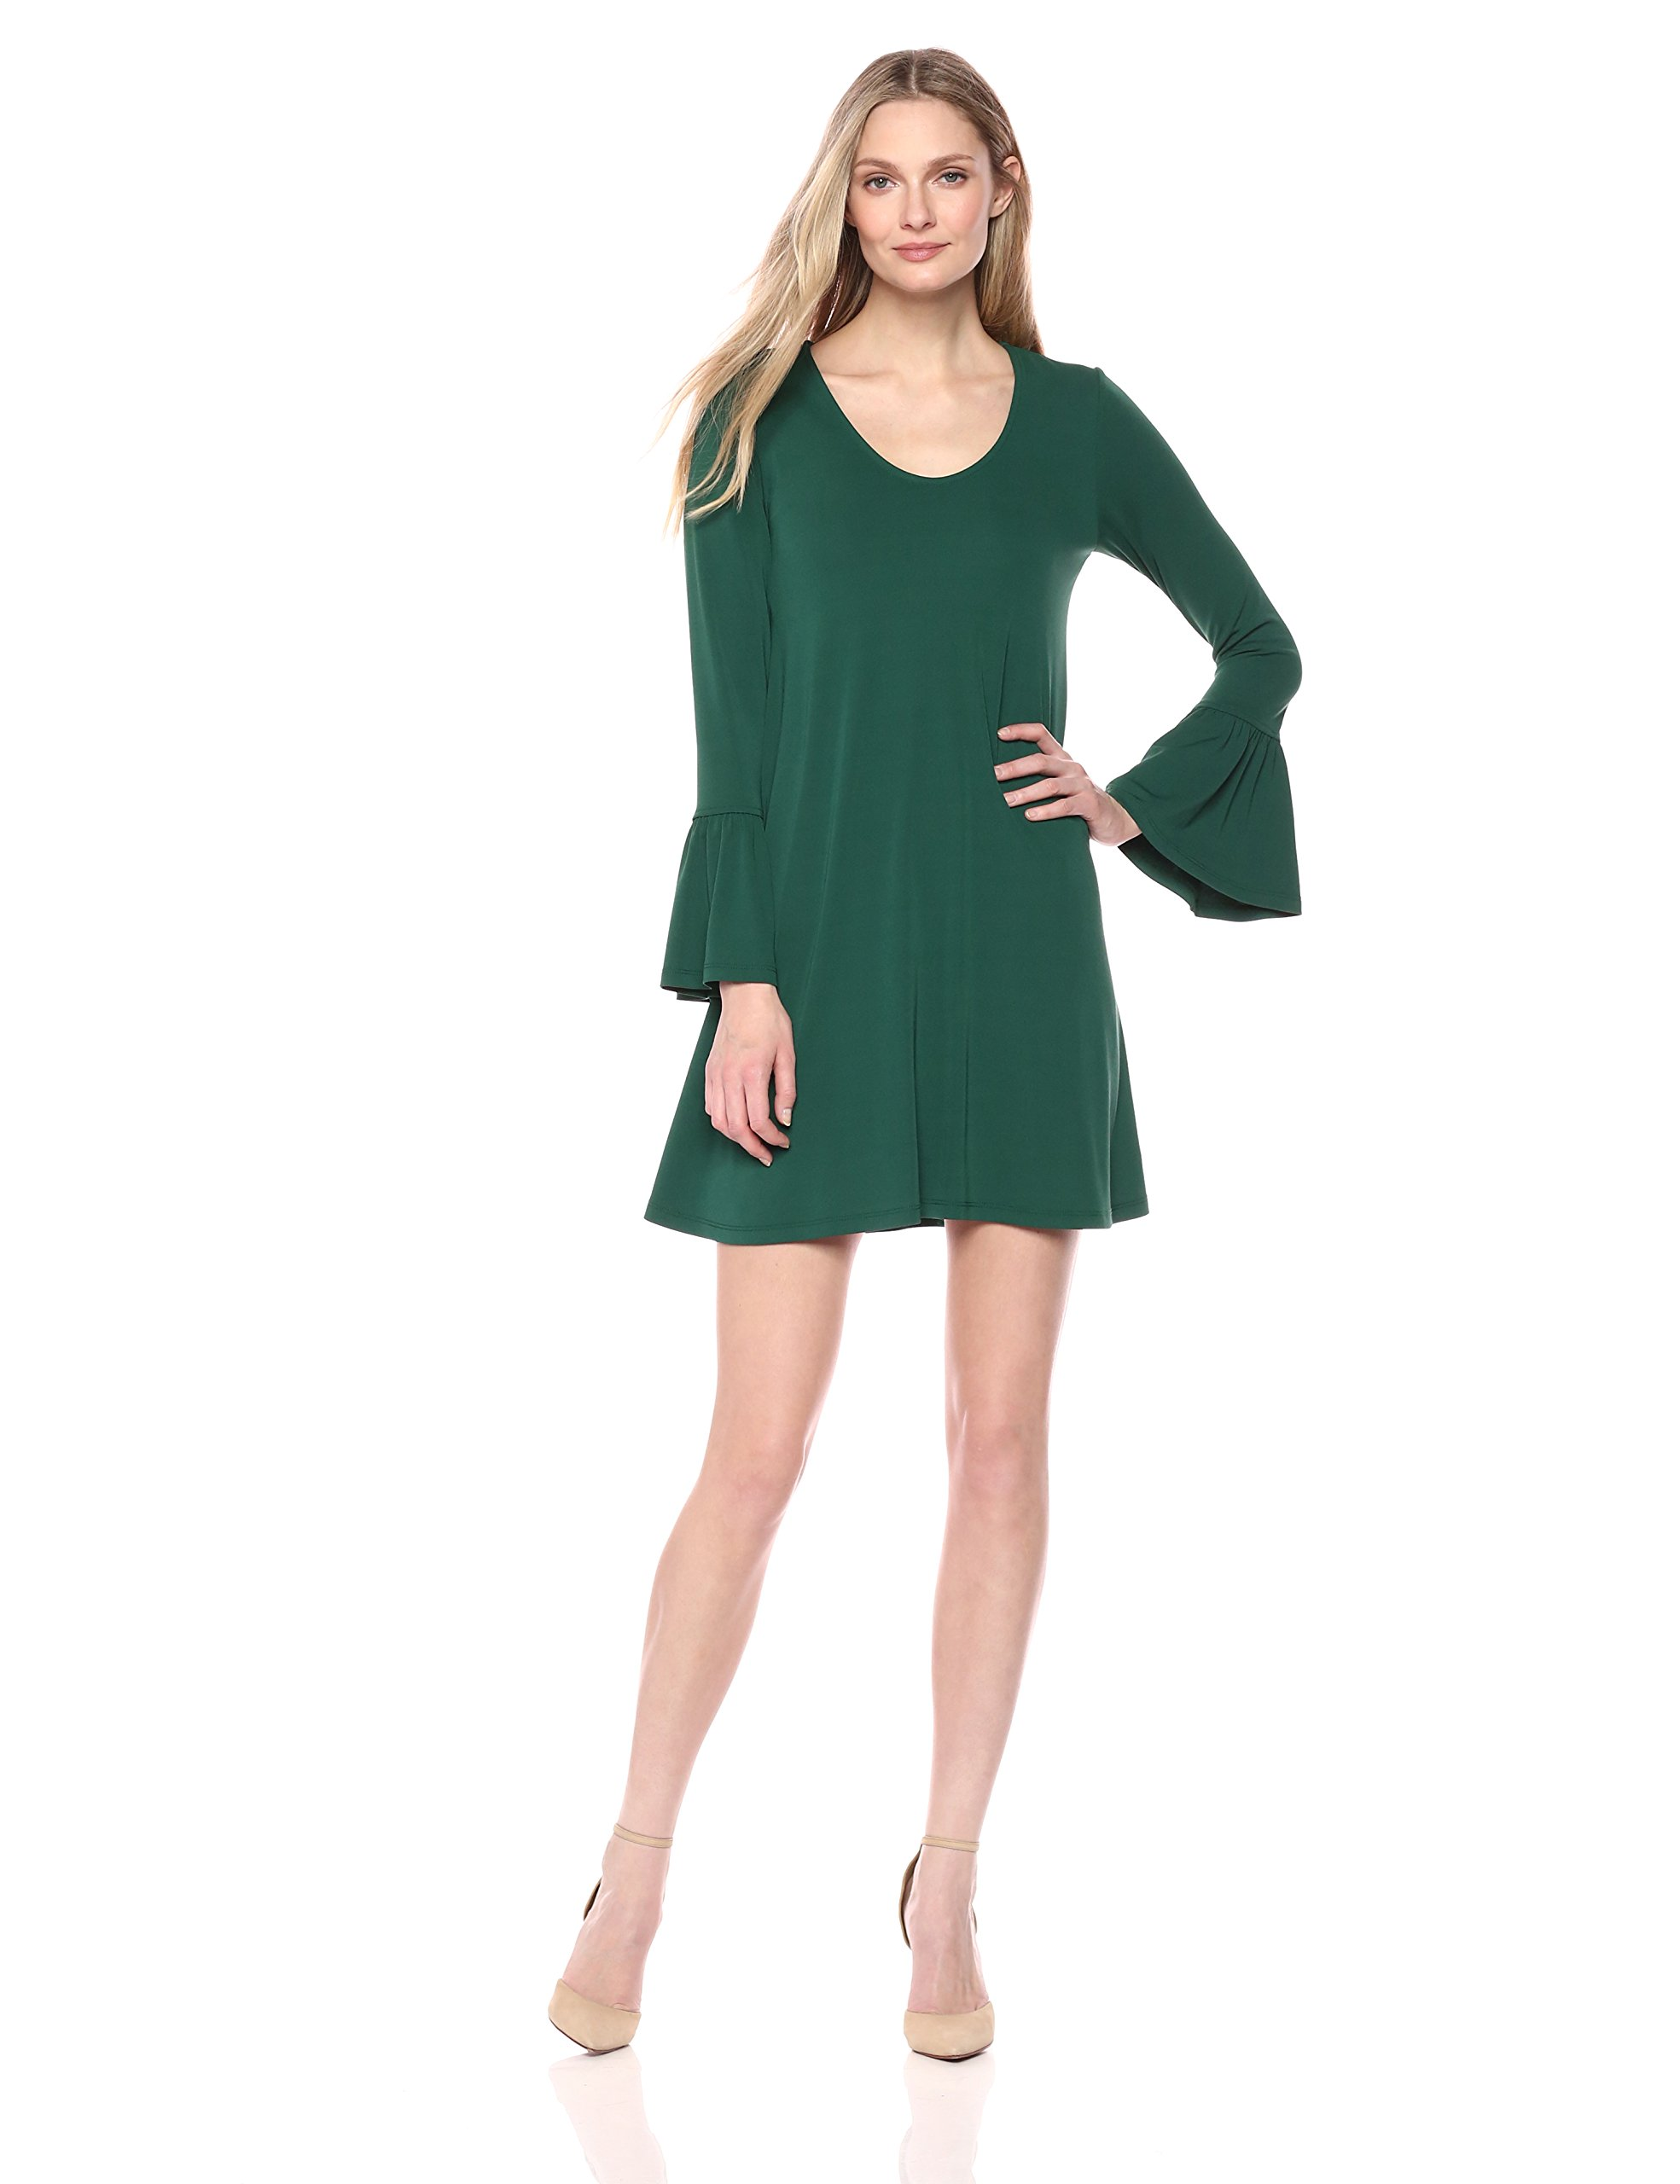 Karen Kane Women's Bell Sleeve Dress, Emerald, M